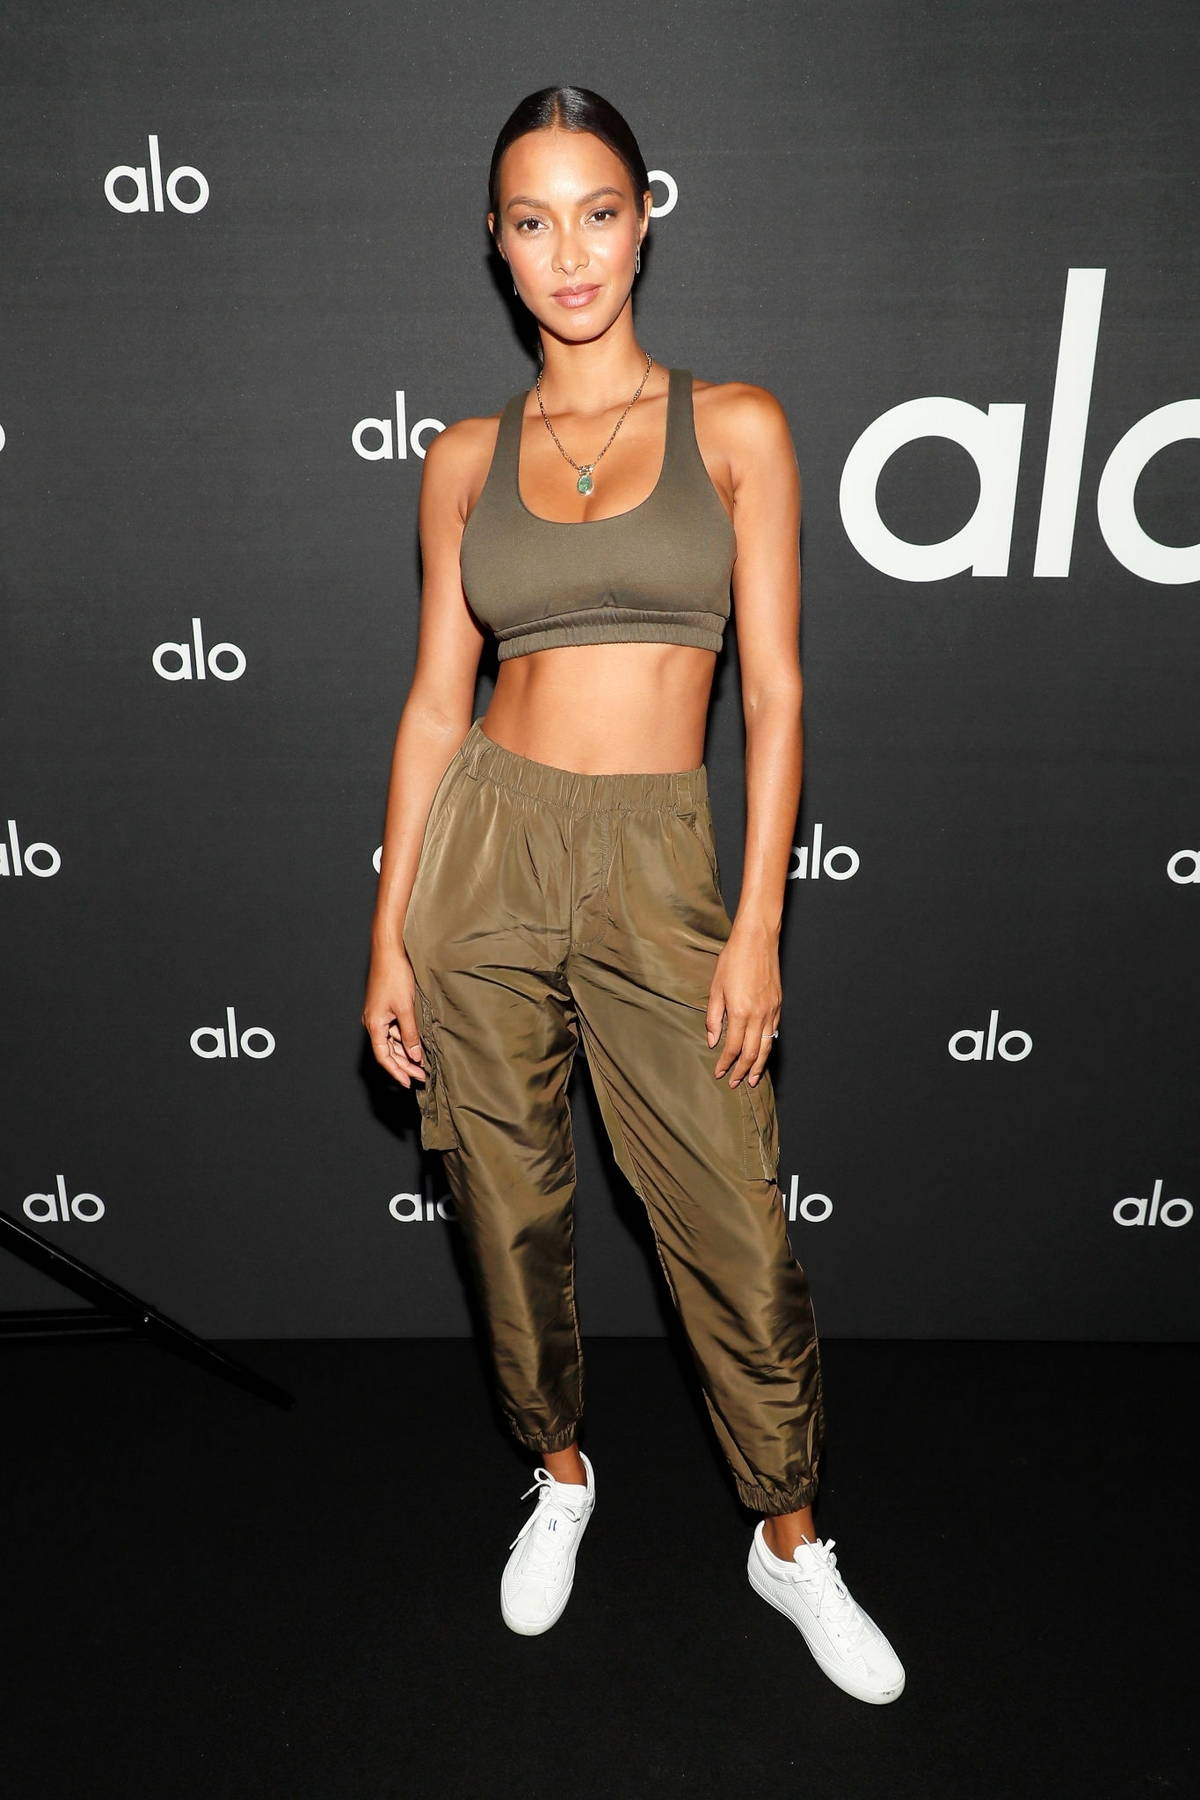 Lais Ribeiro attends the Alo Wellness Department Dinner in New York City